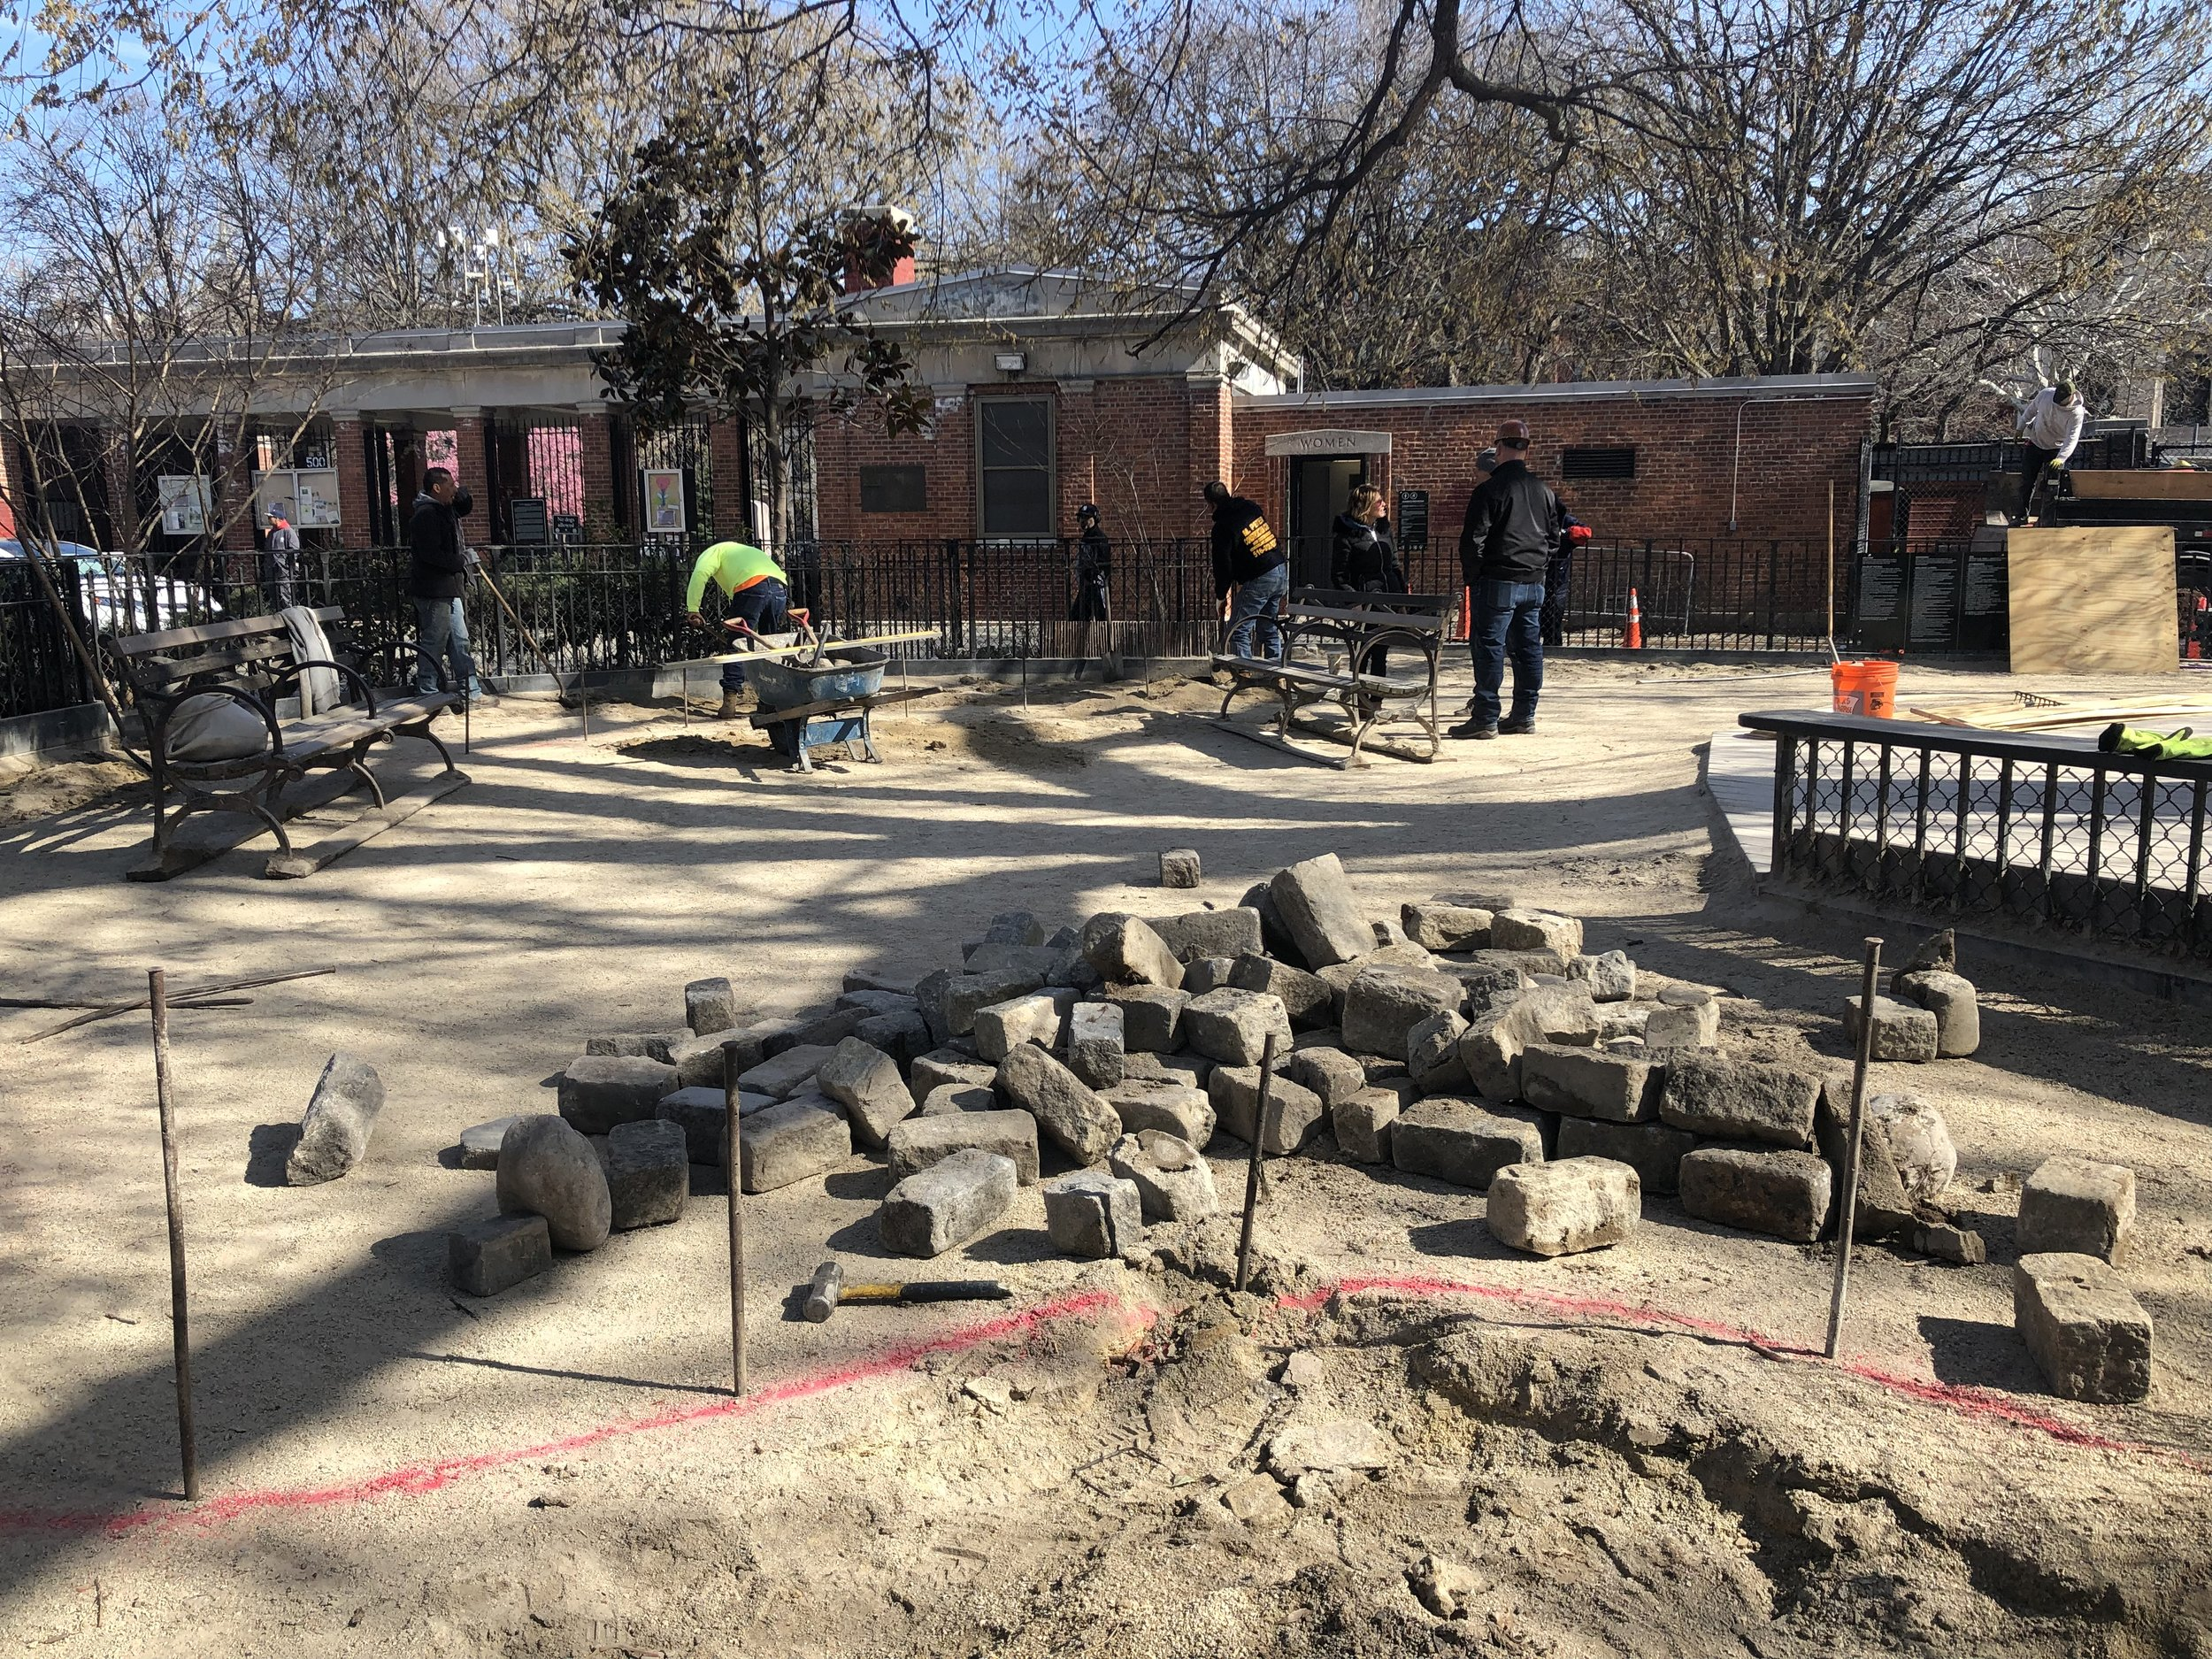 Cobblestones and benches are removed from the old run